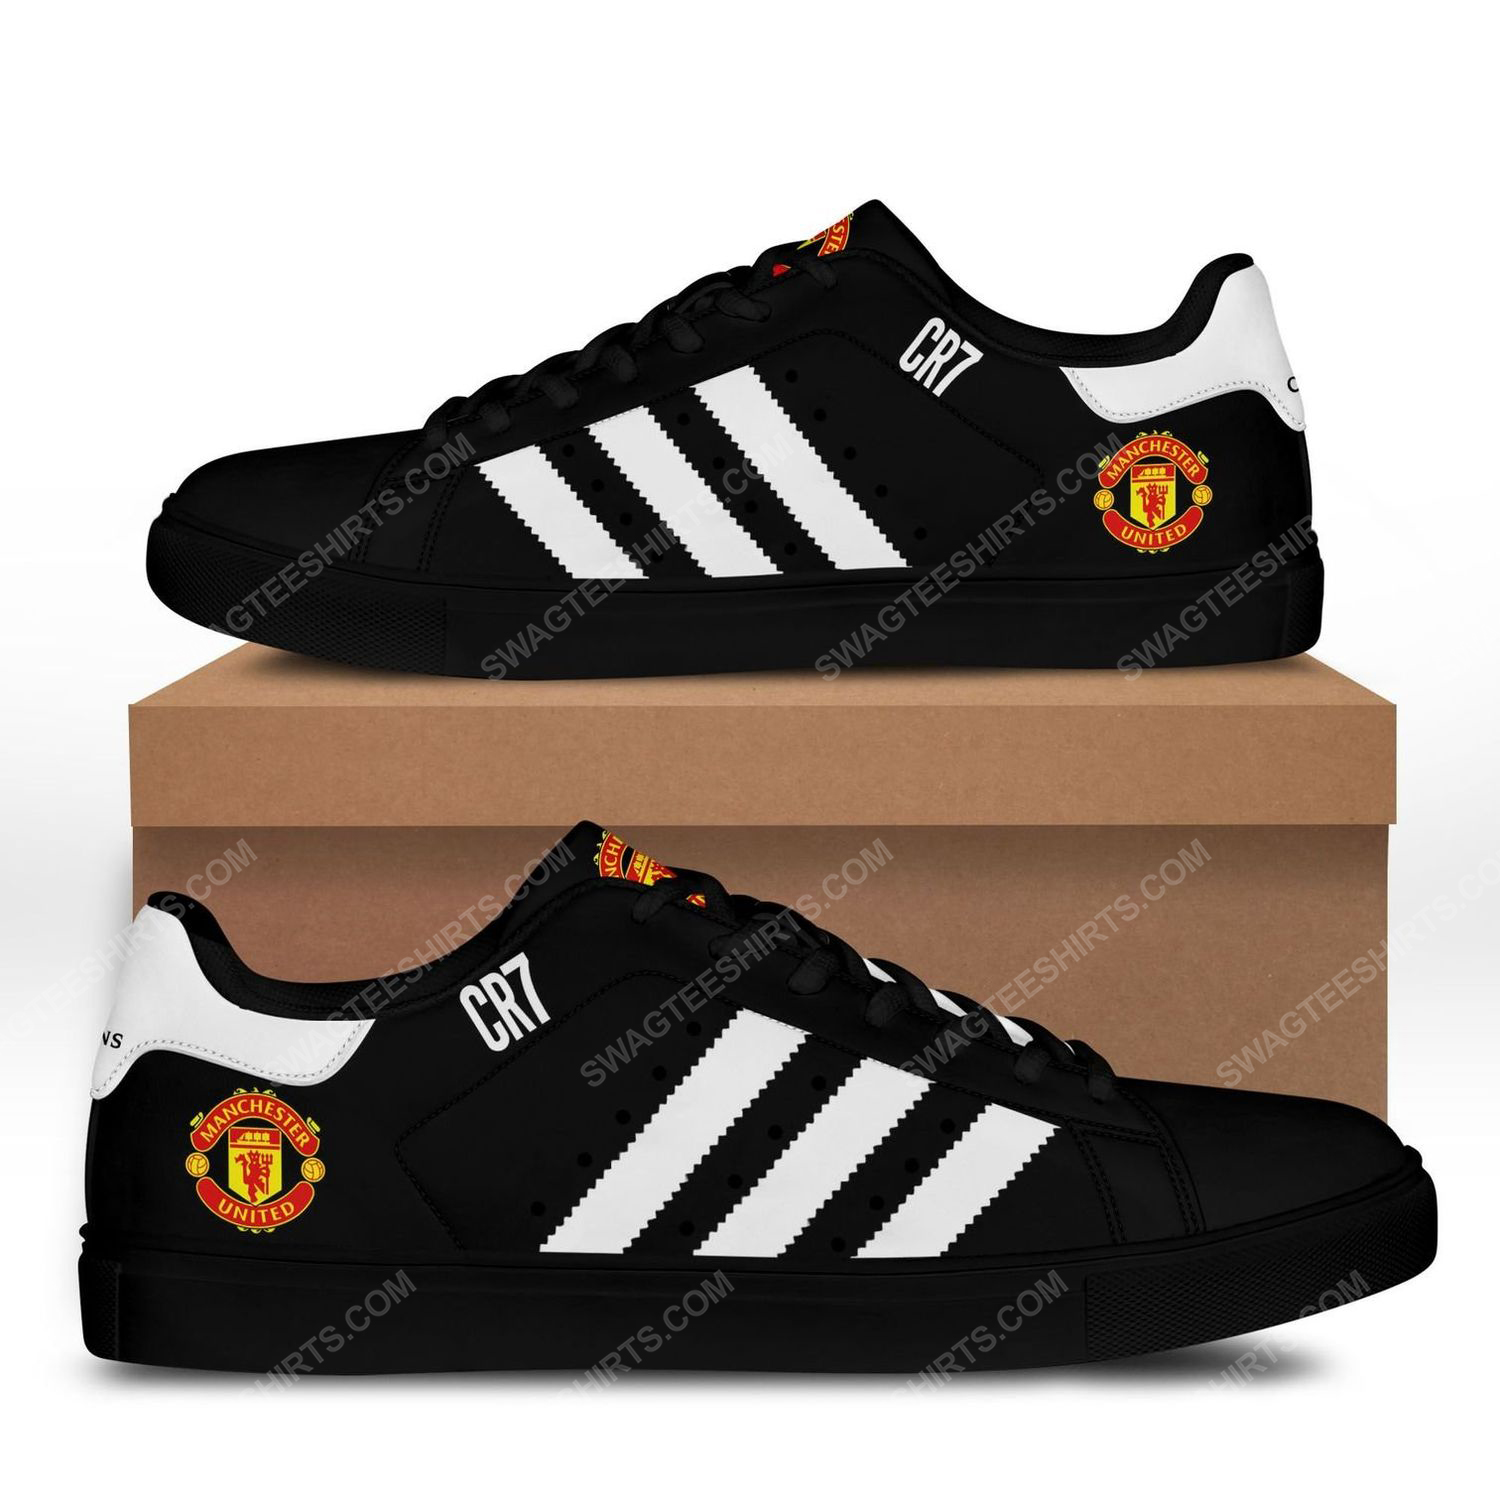 Manchester united football club cr7 stan smith shoes - black 1